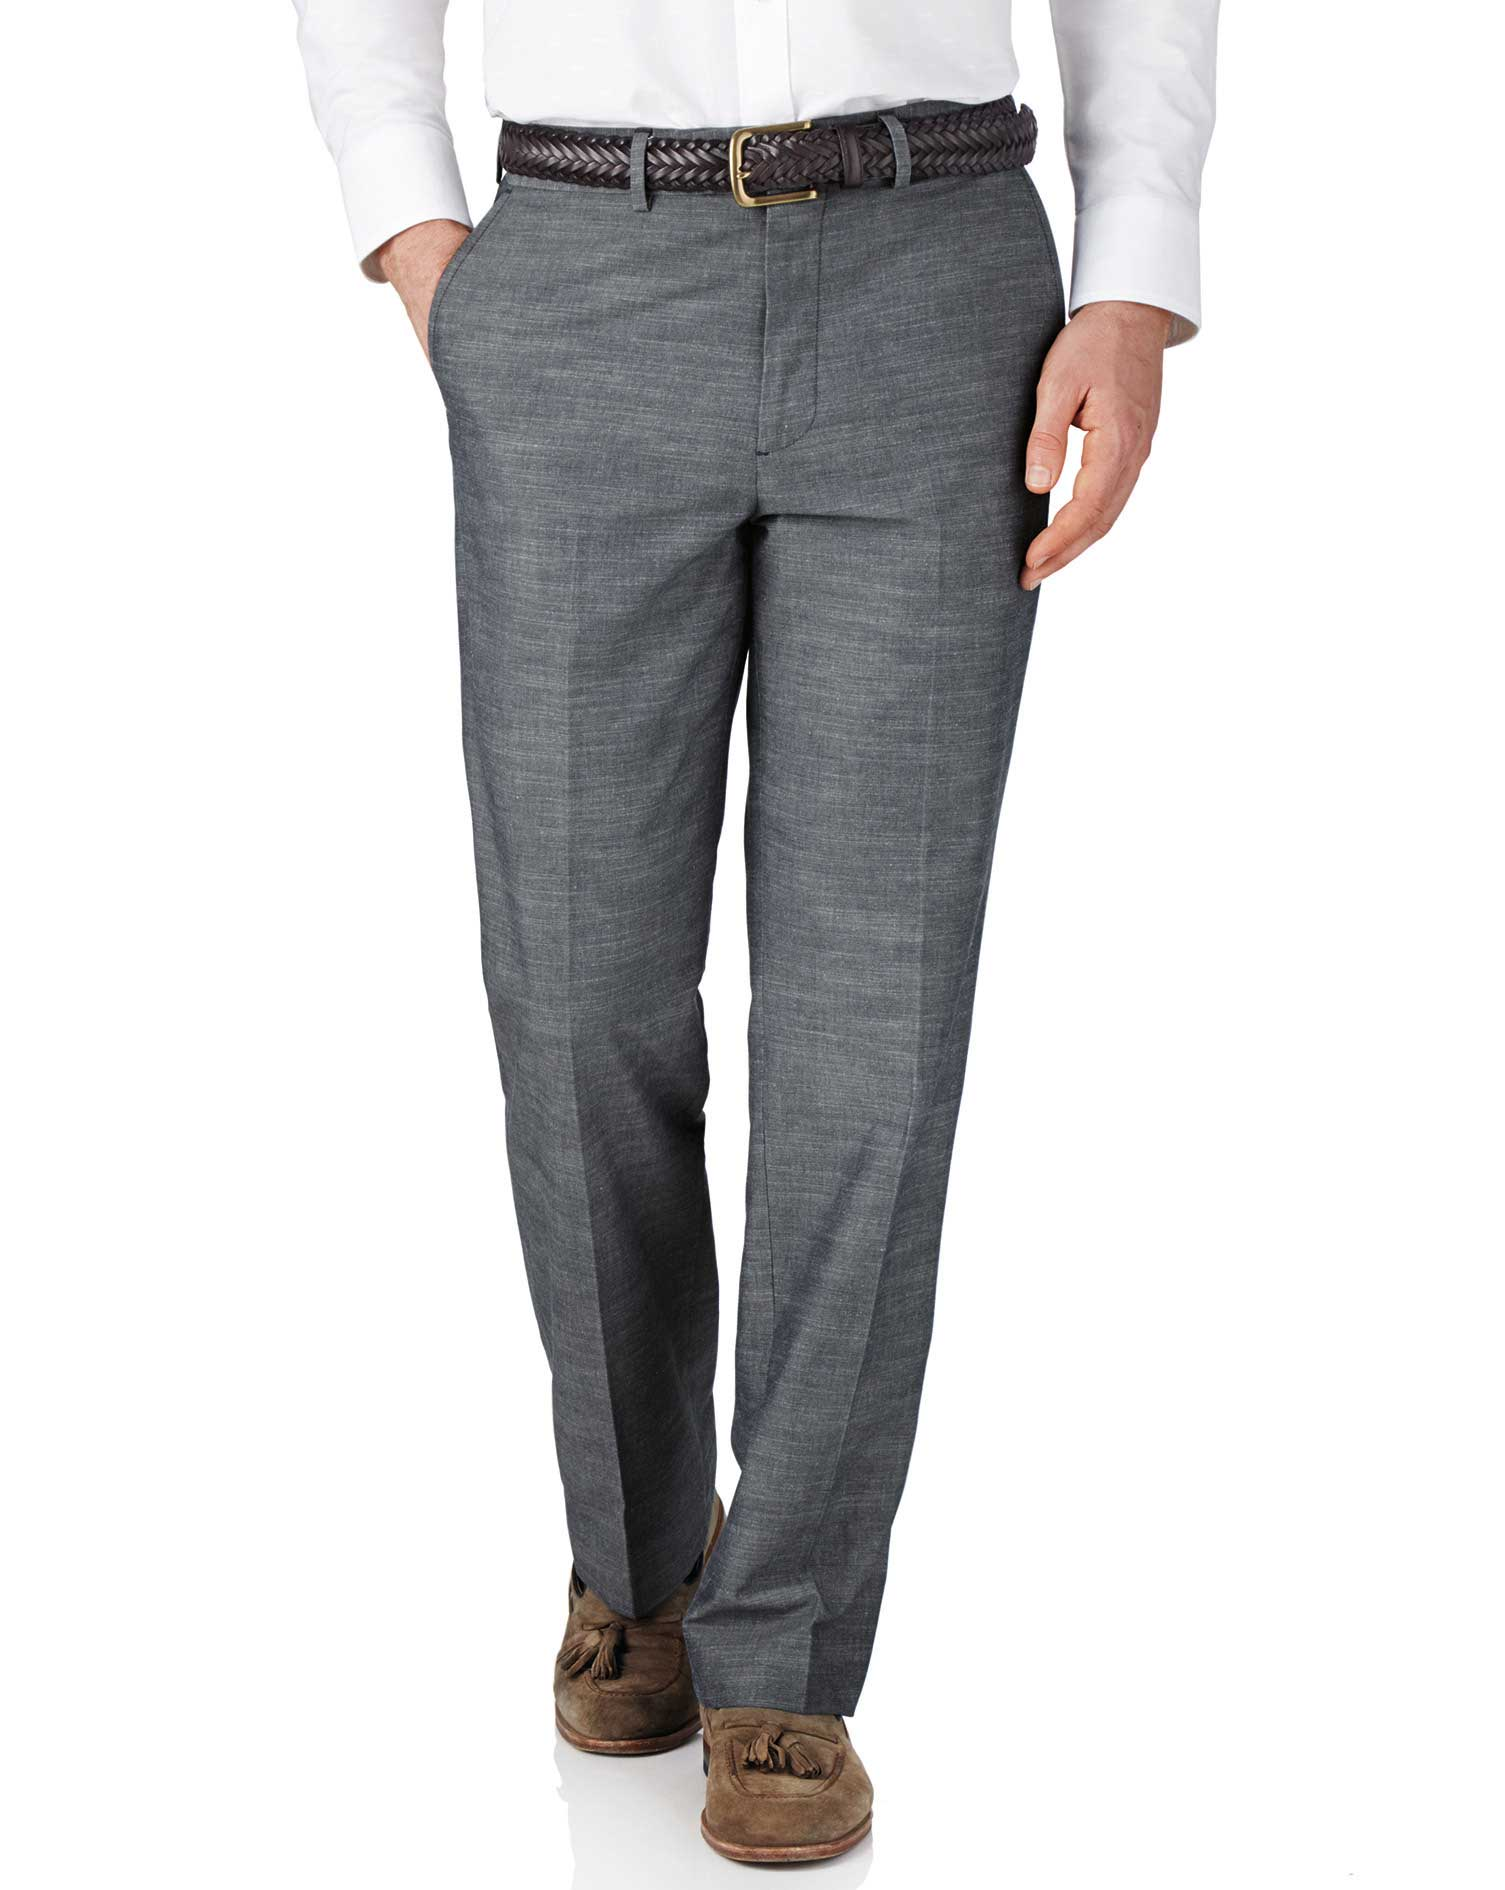 Blue Chambray Classic Fit Trousers Size W32 L30 by Charles Tyrwhitt